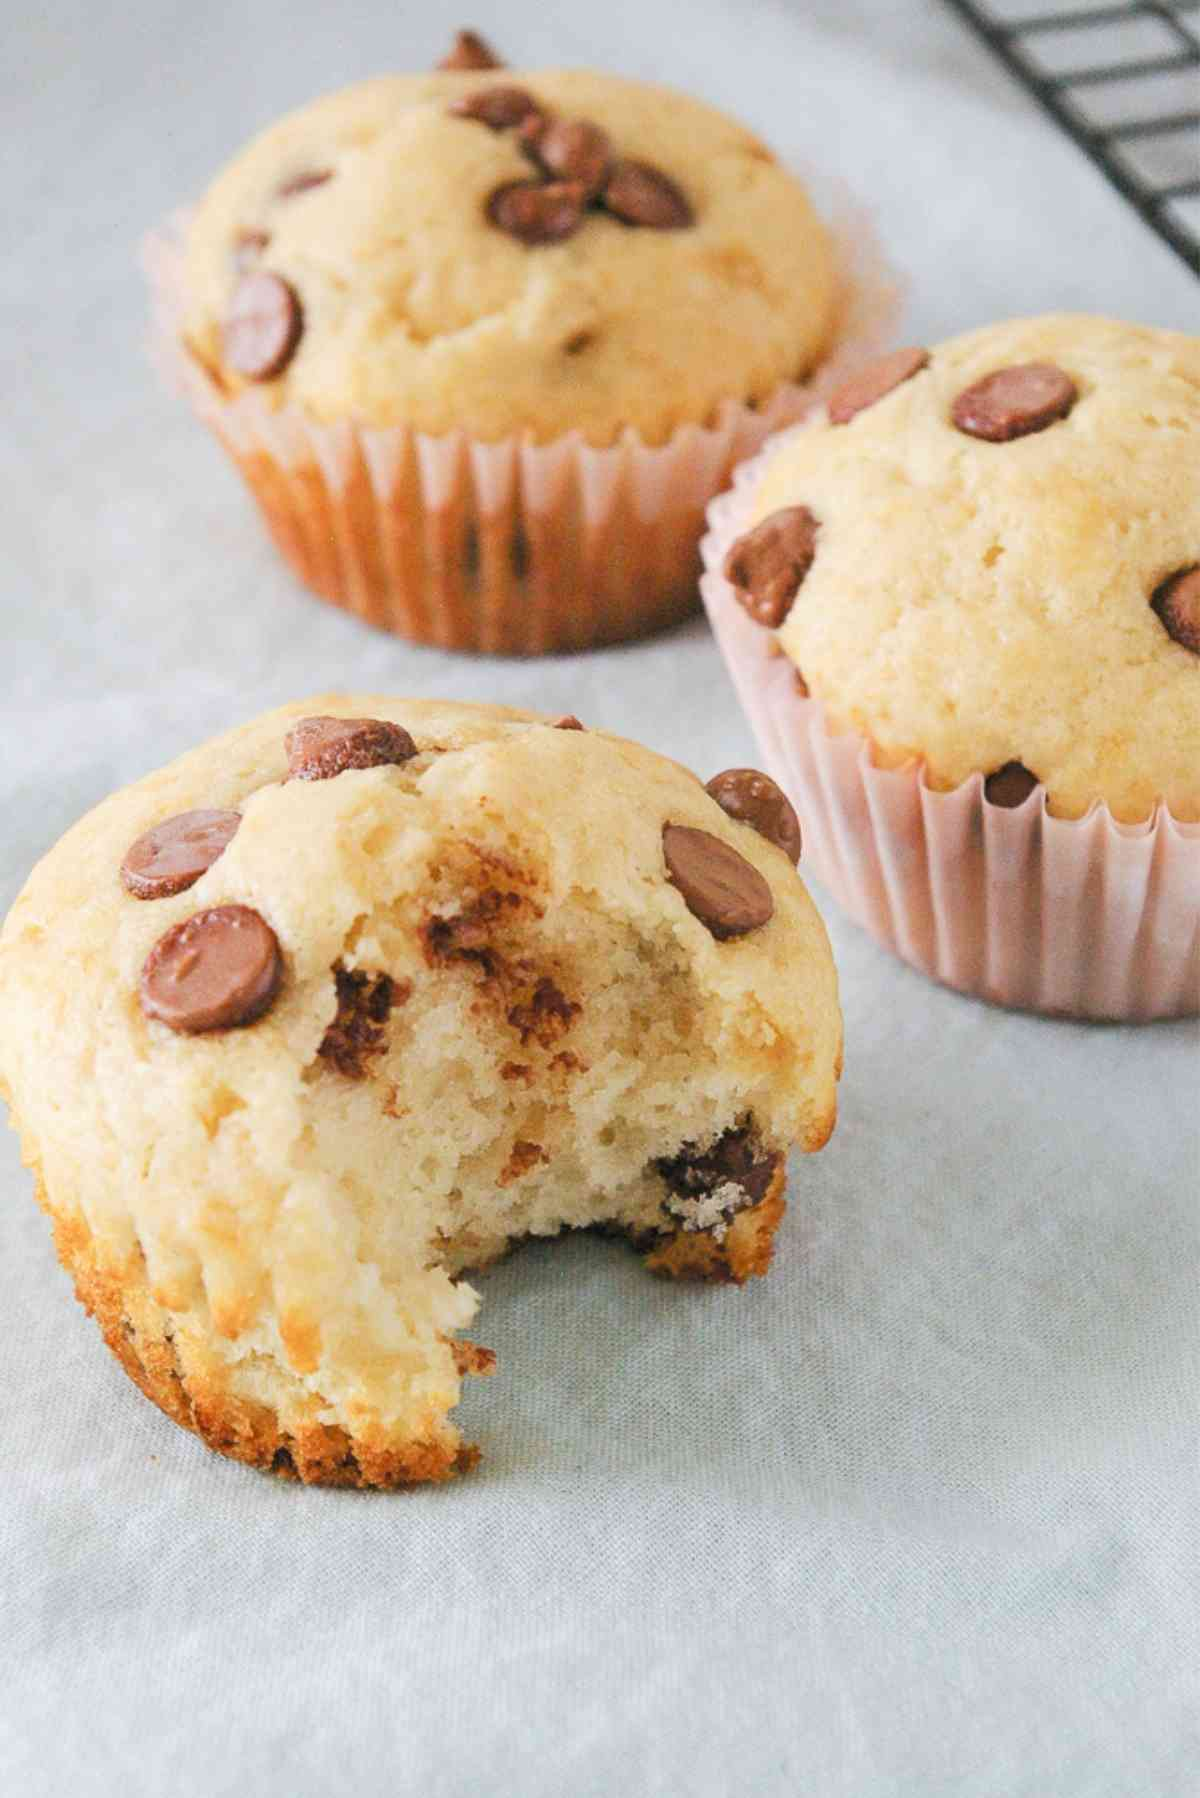 Chocolate chip muffin with a bite out of it.